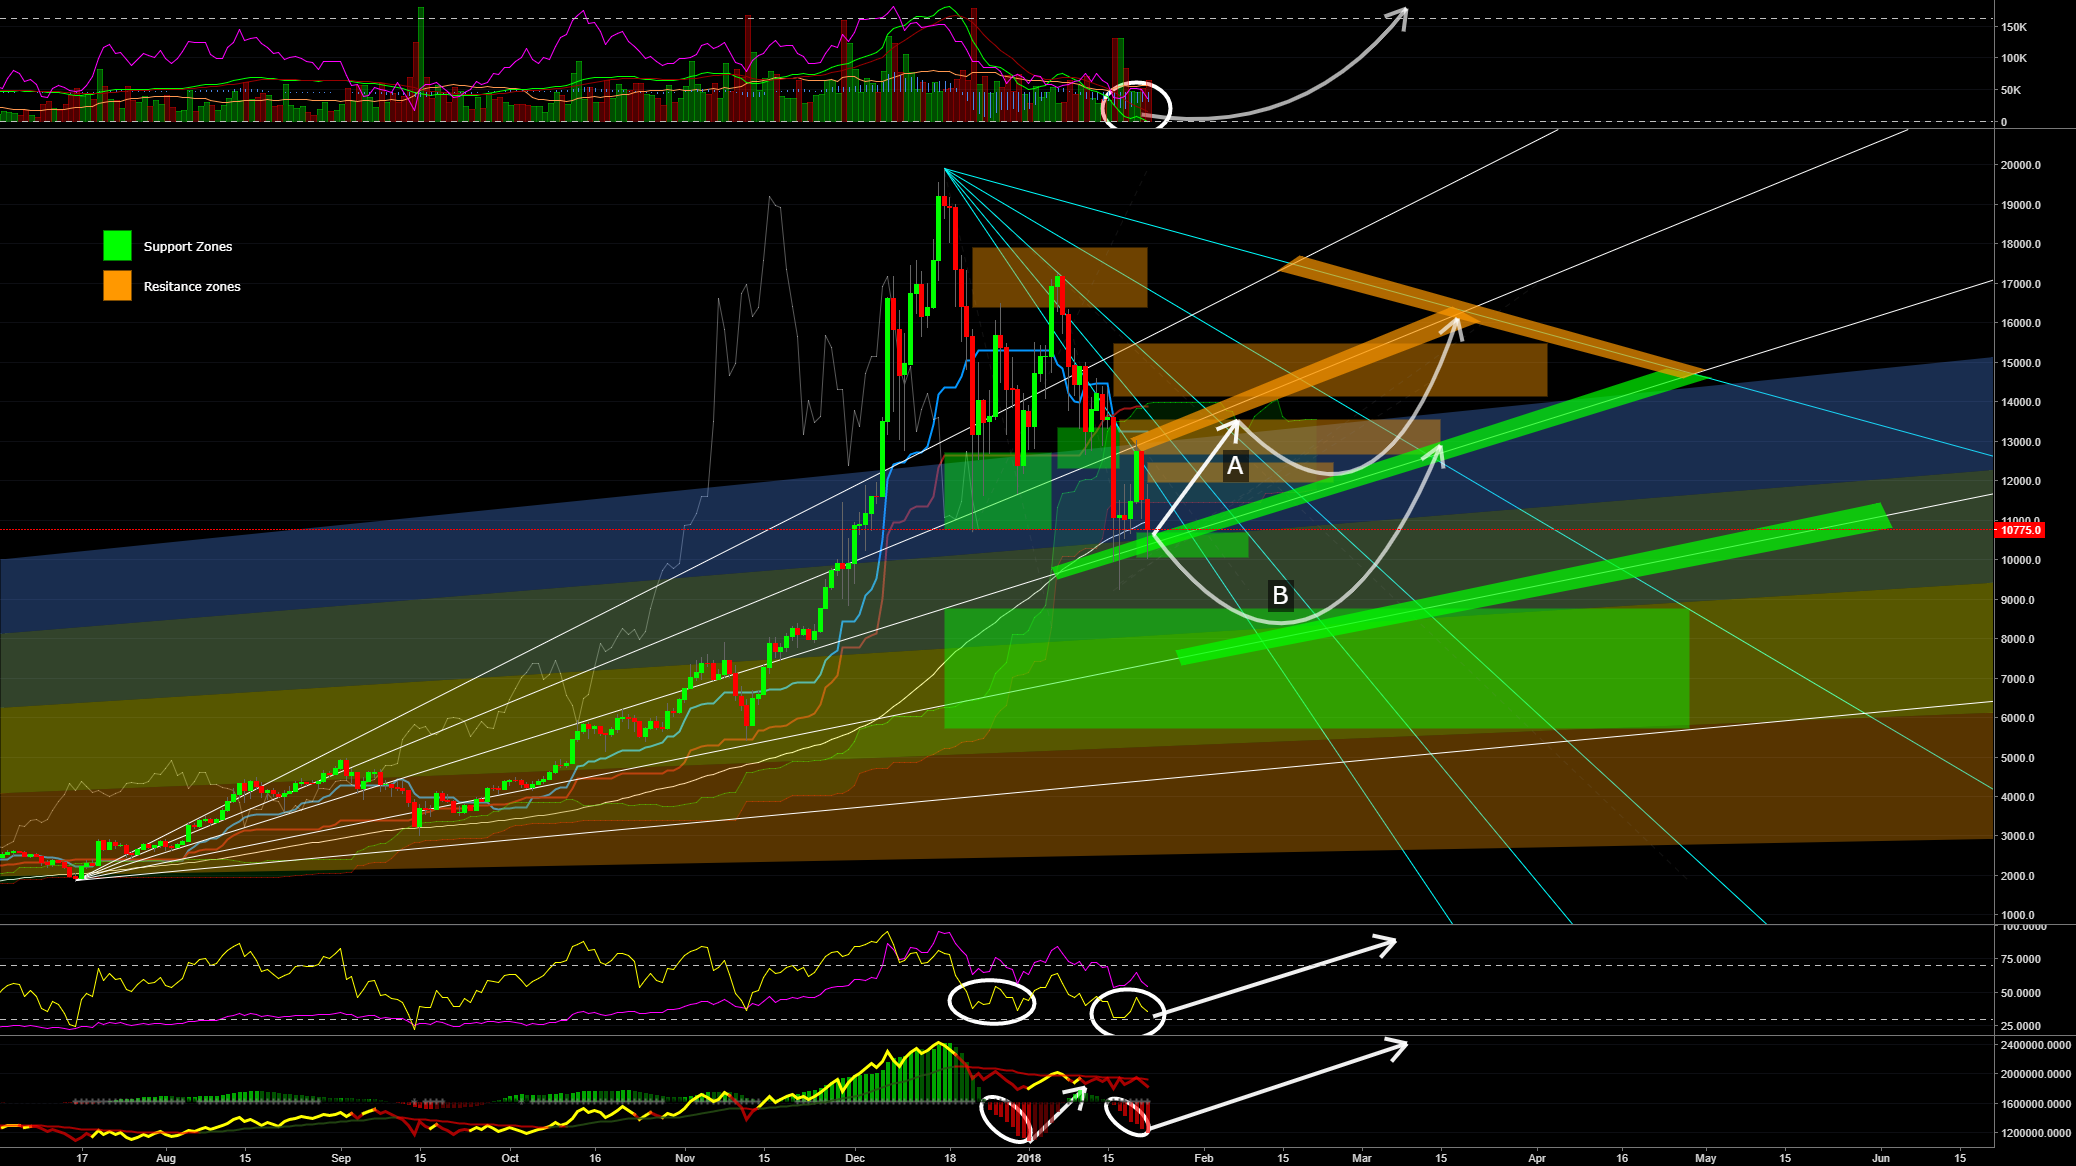 #bitcoin daily chart - Testing Bottom? Possible push ahead?